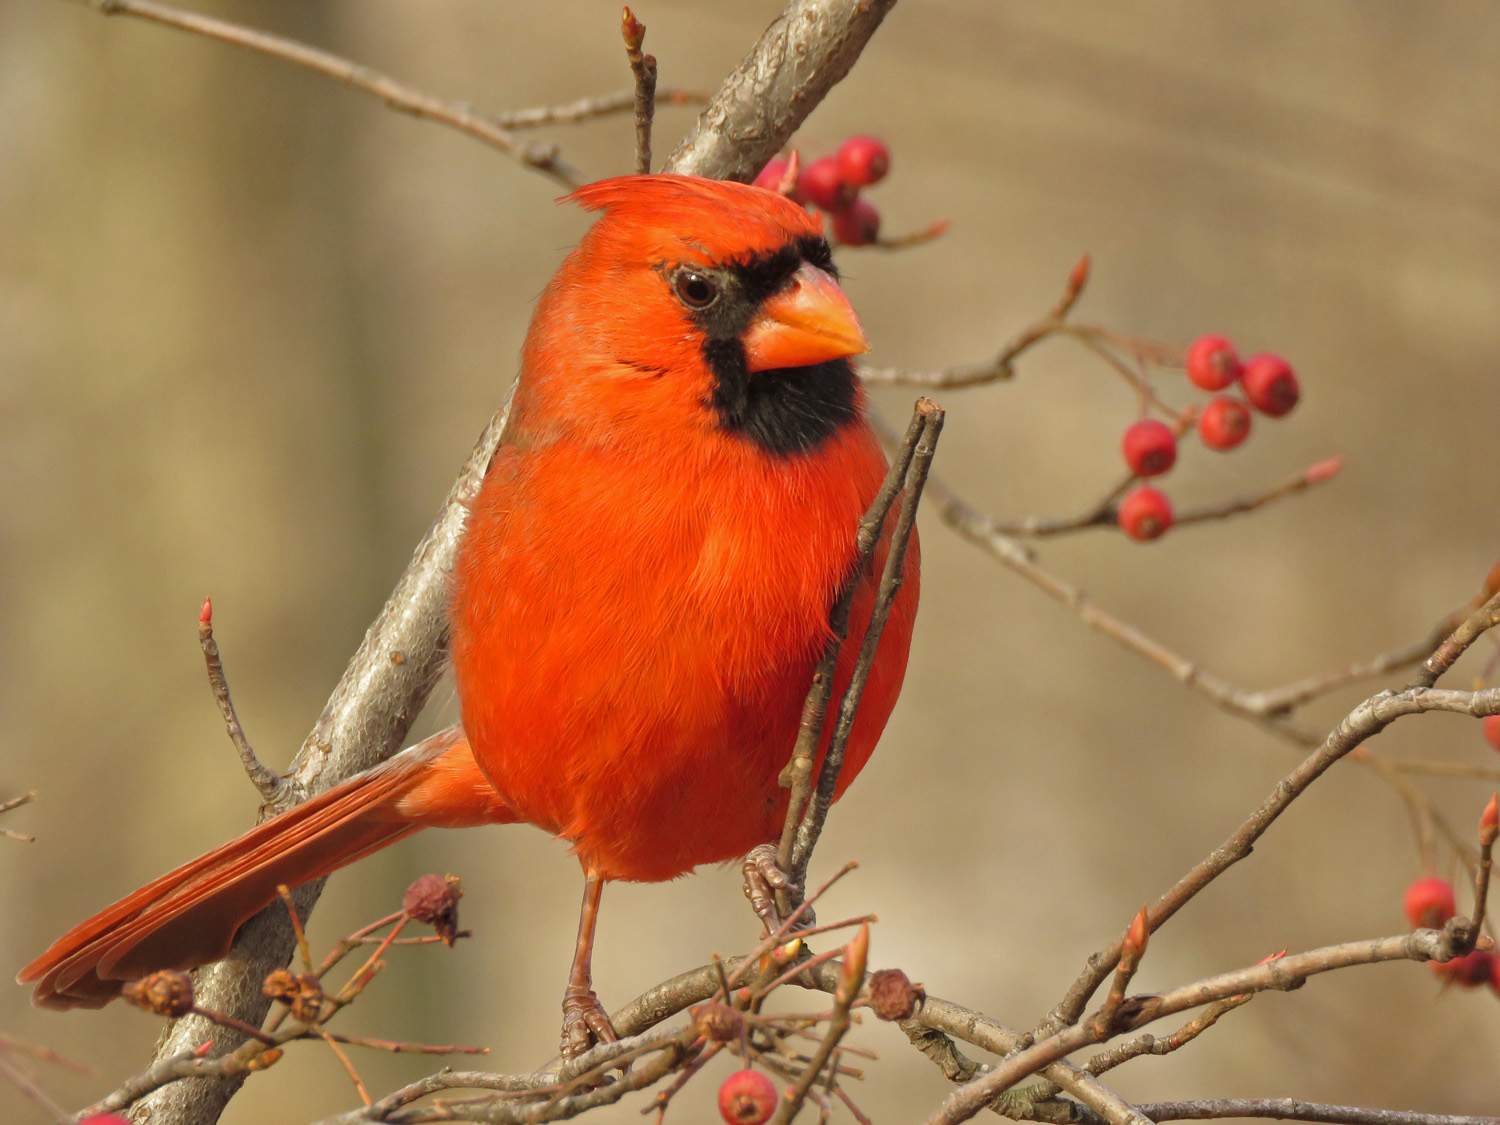 Northern cardinal, Central Park, December 24, 2018